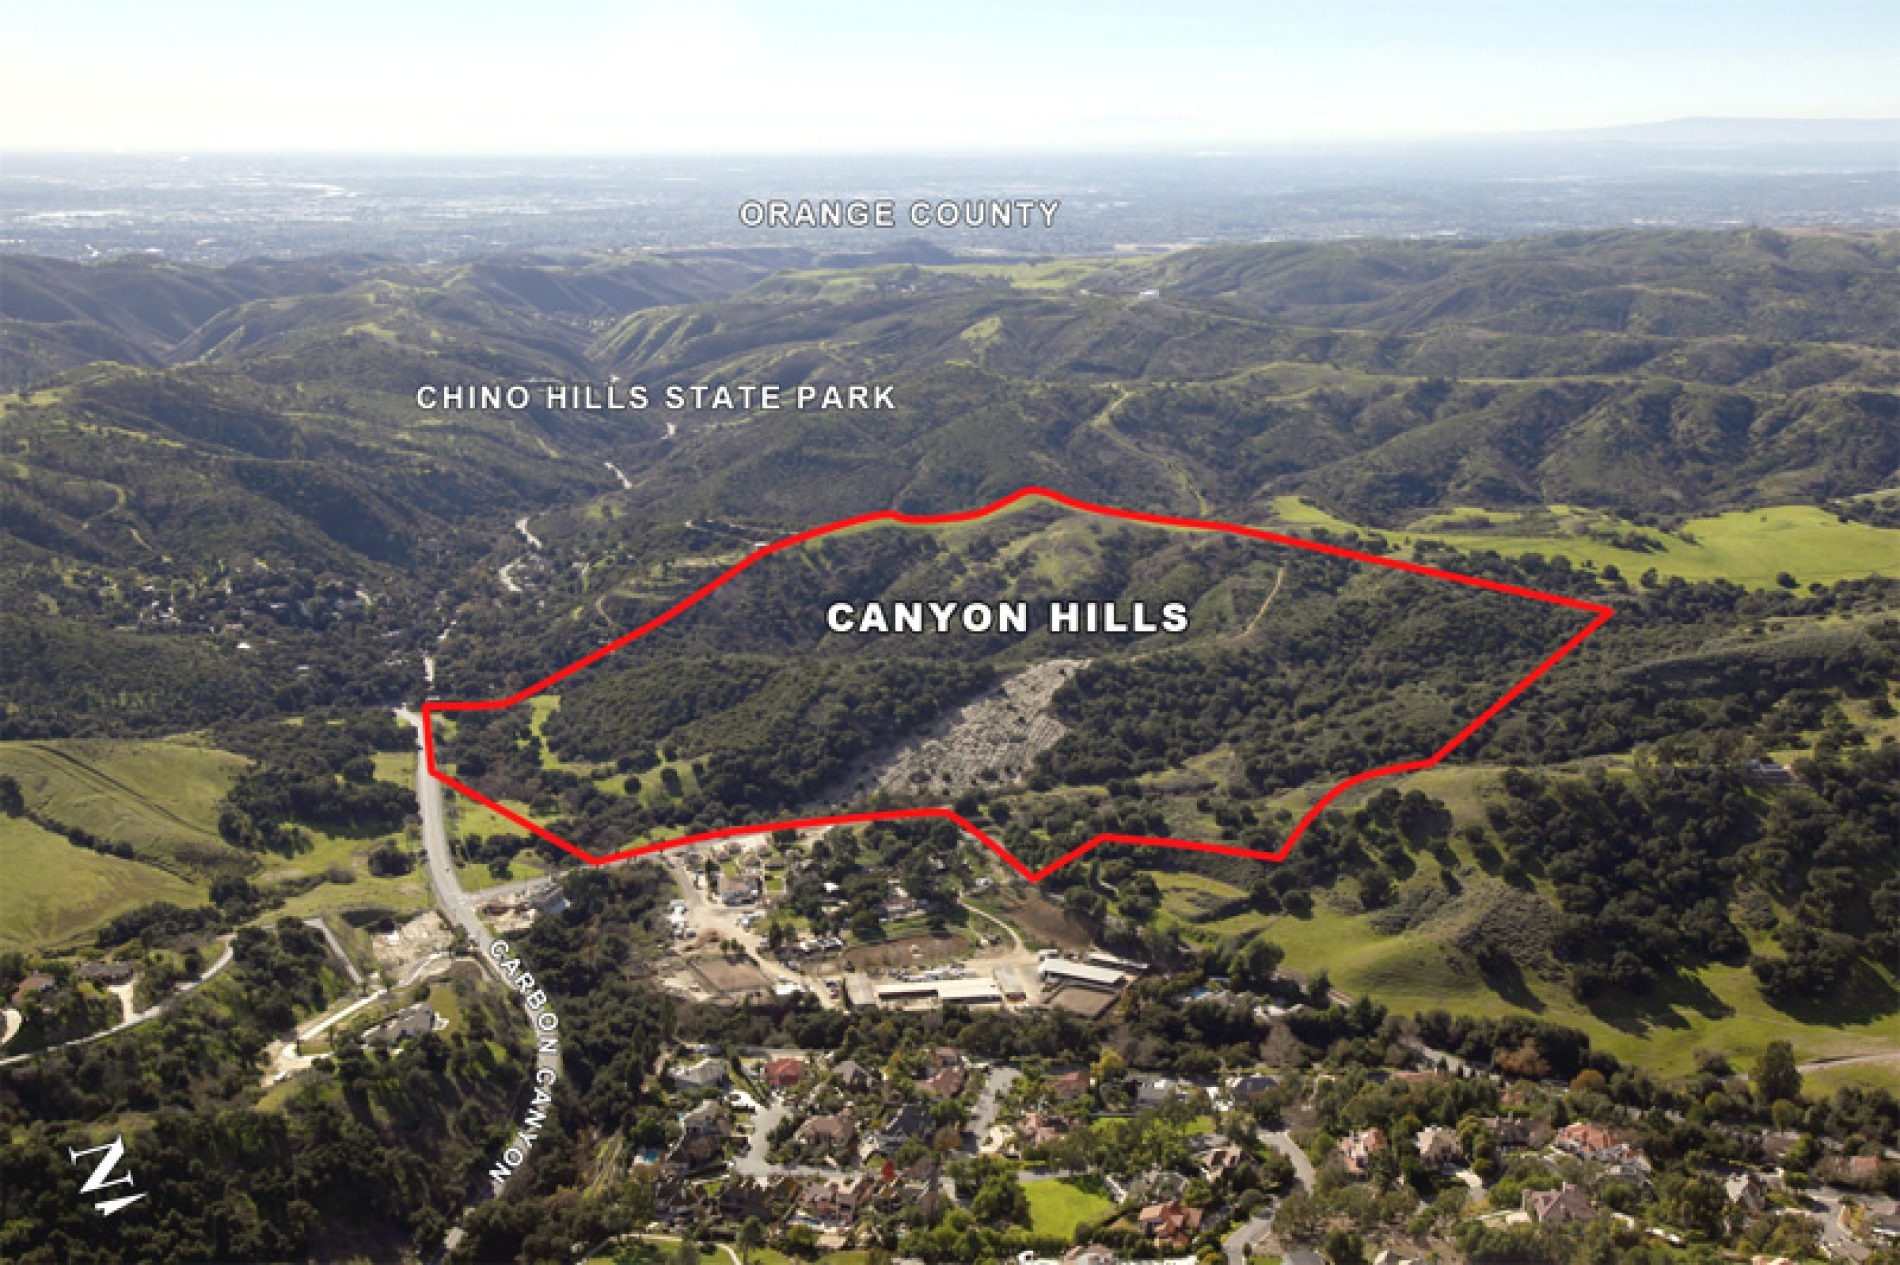 Woodbridge Pacific Closes on 76 Lot Canyon Hills Project in Chino Hills